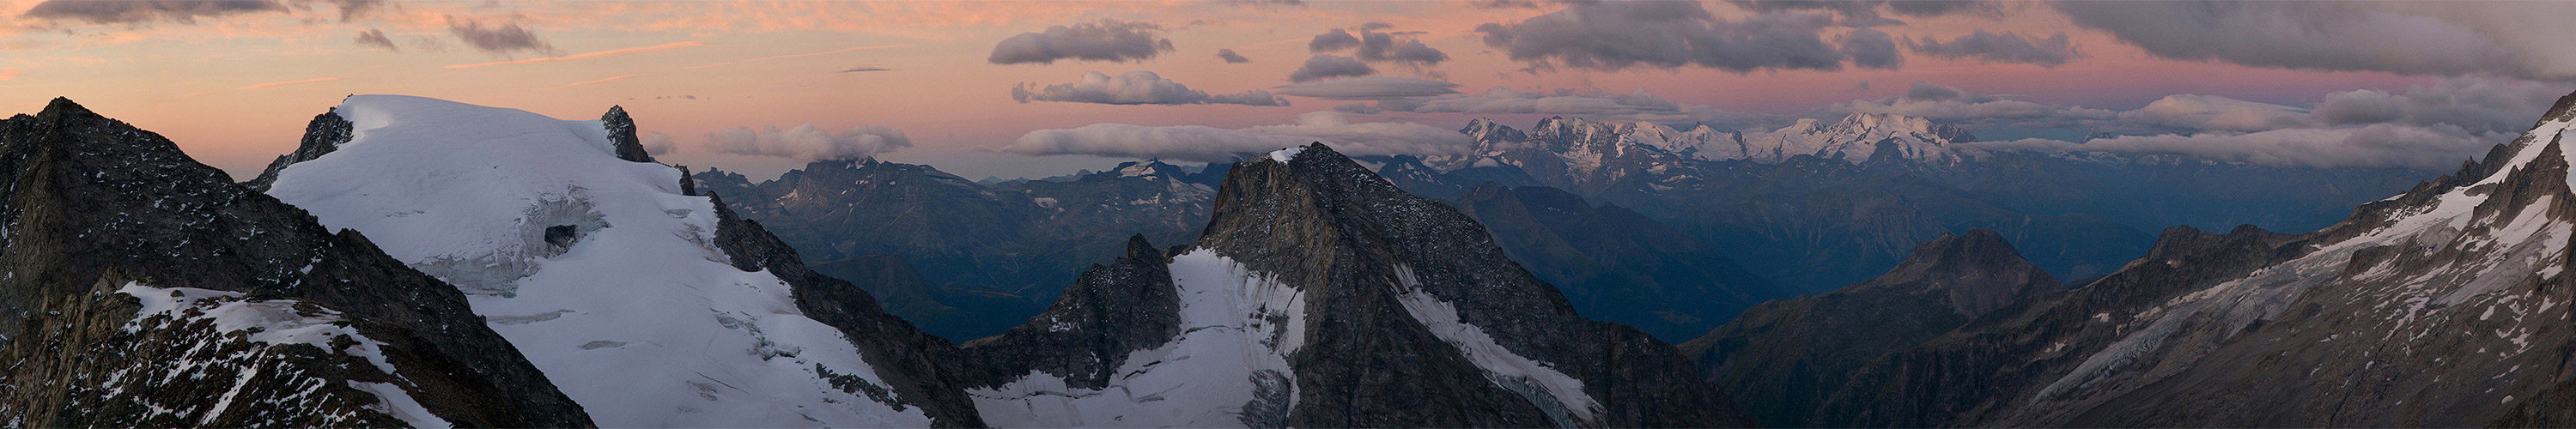 Bernese Alps, Switzerland